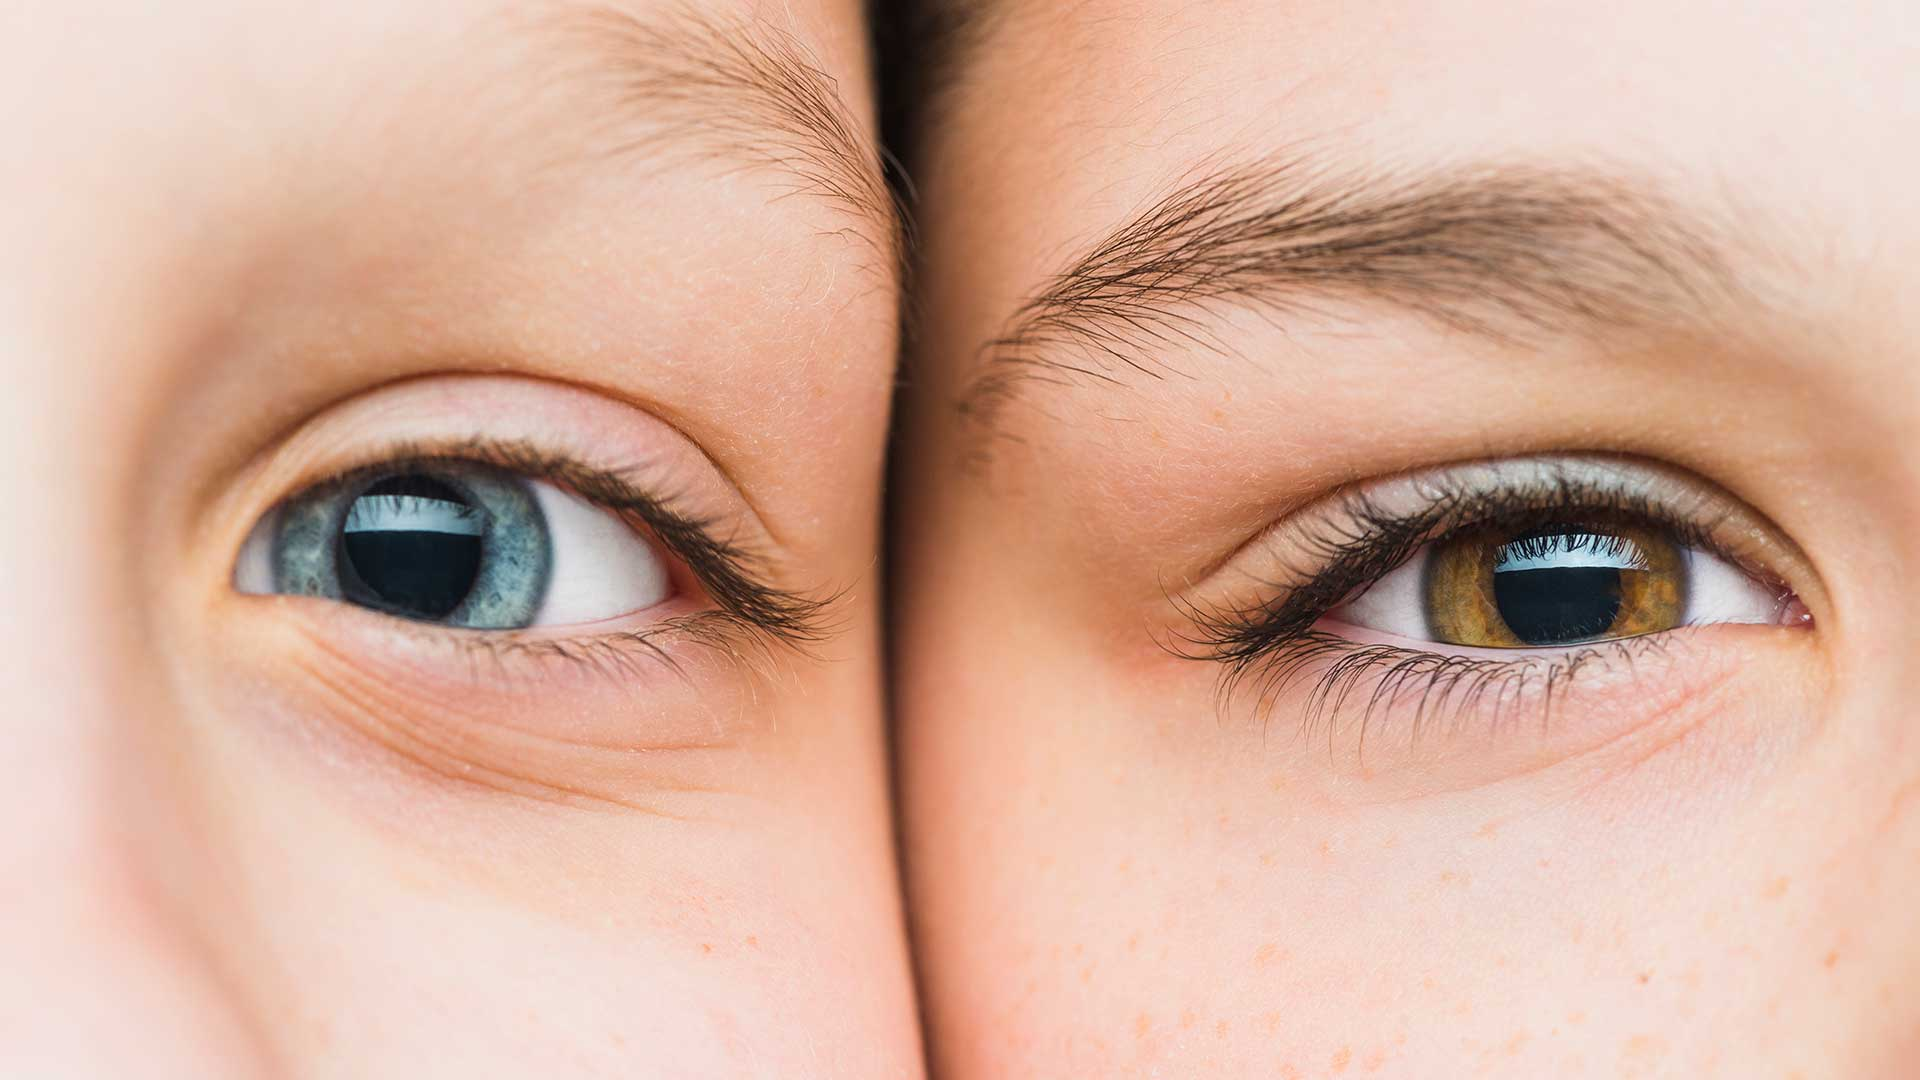 Permanently Eye Color Change in Iran